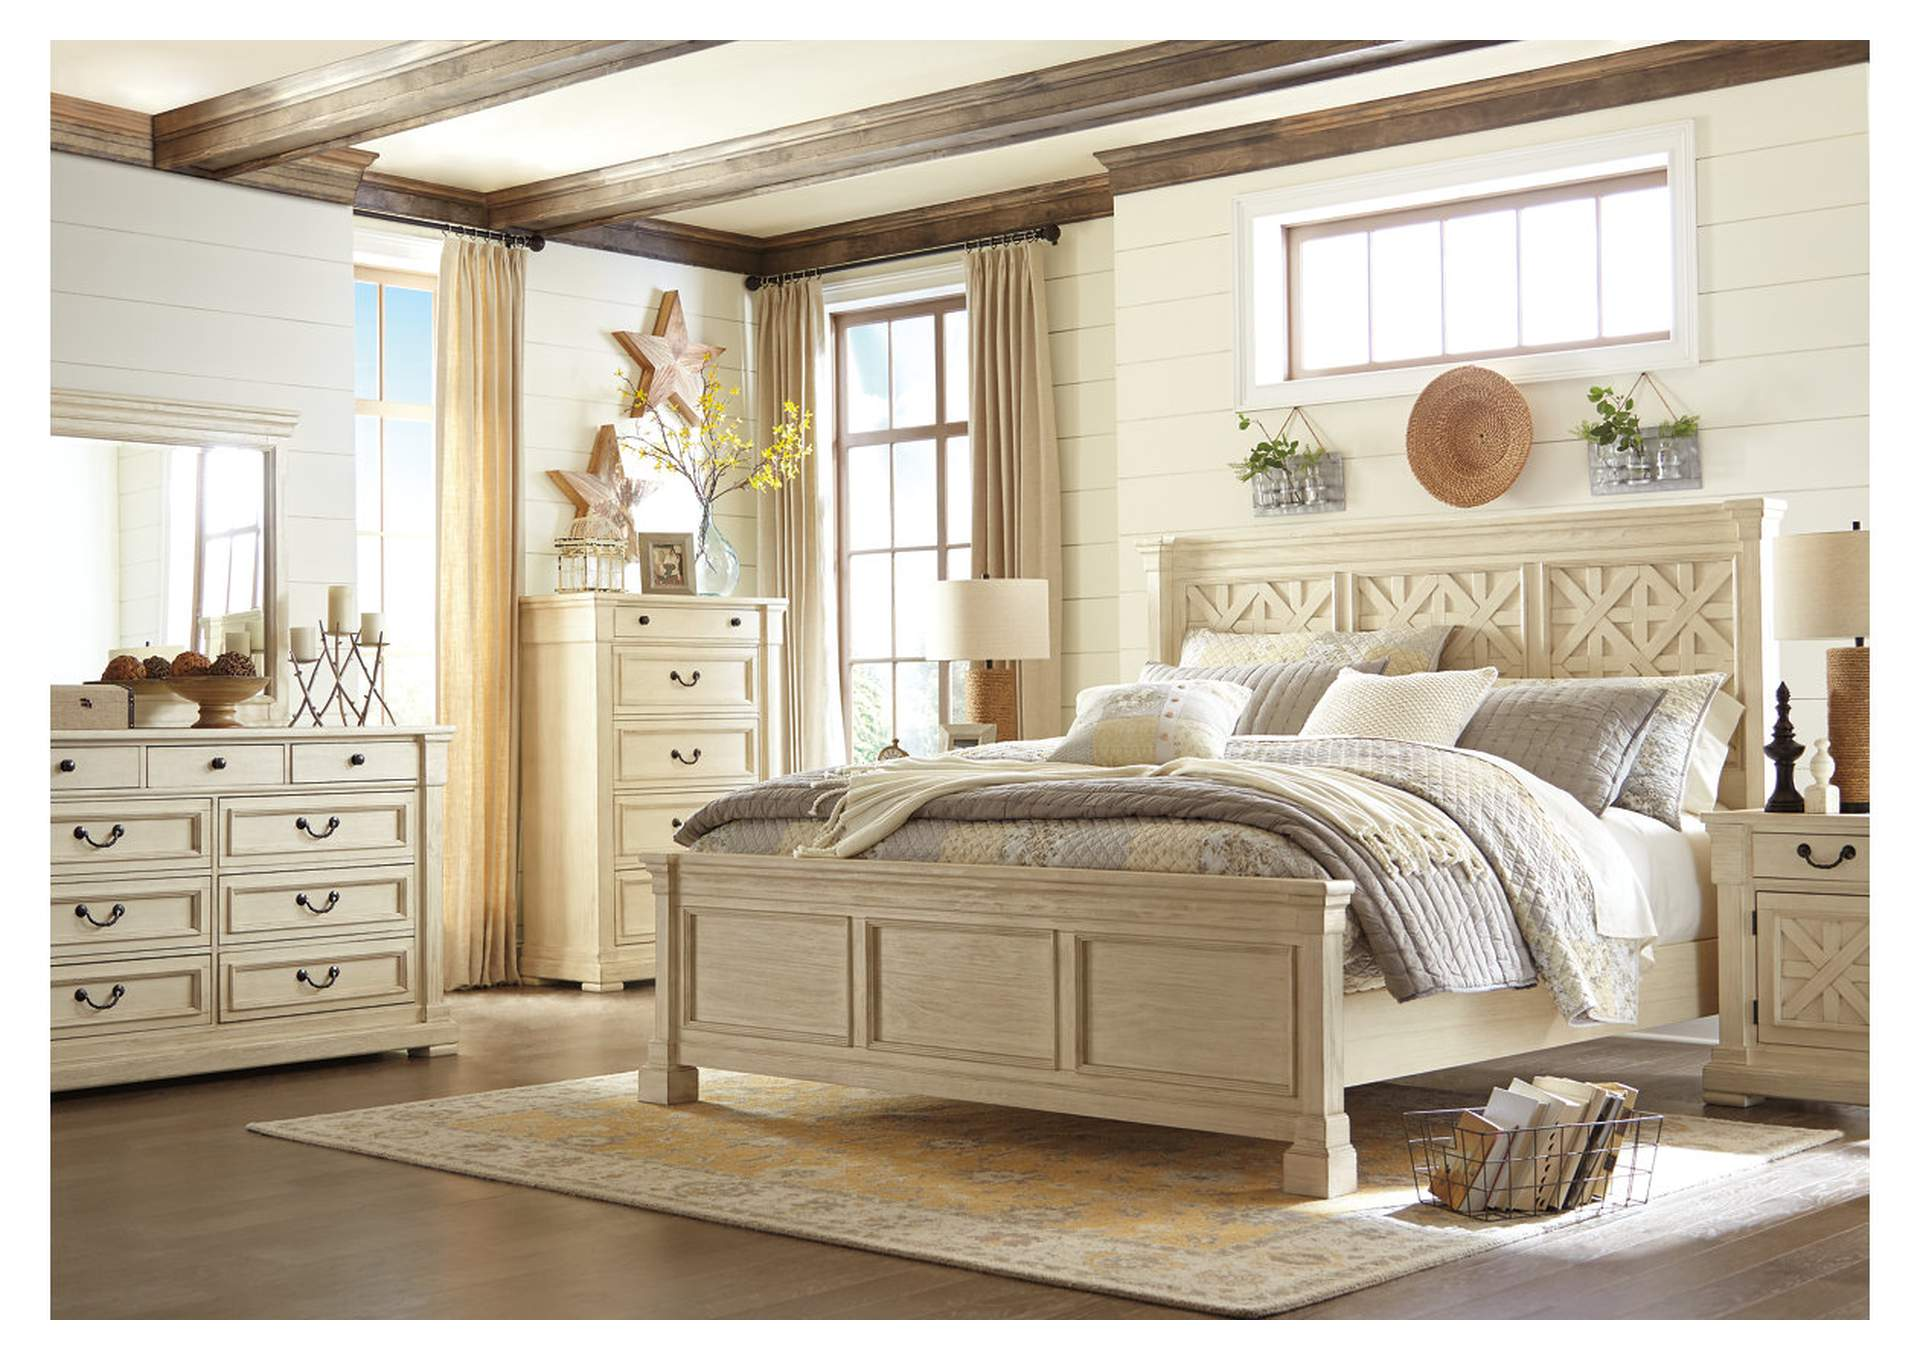 Bolanburg White California King Panel Bed w/Dresser, Mirror & Nightstand,Signature Design By Ashley